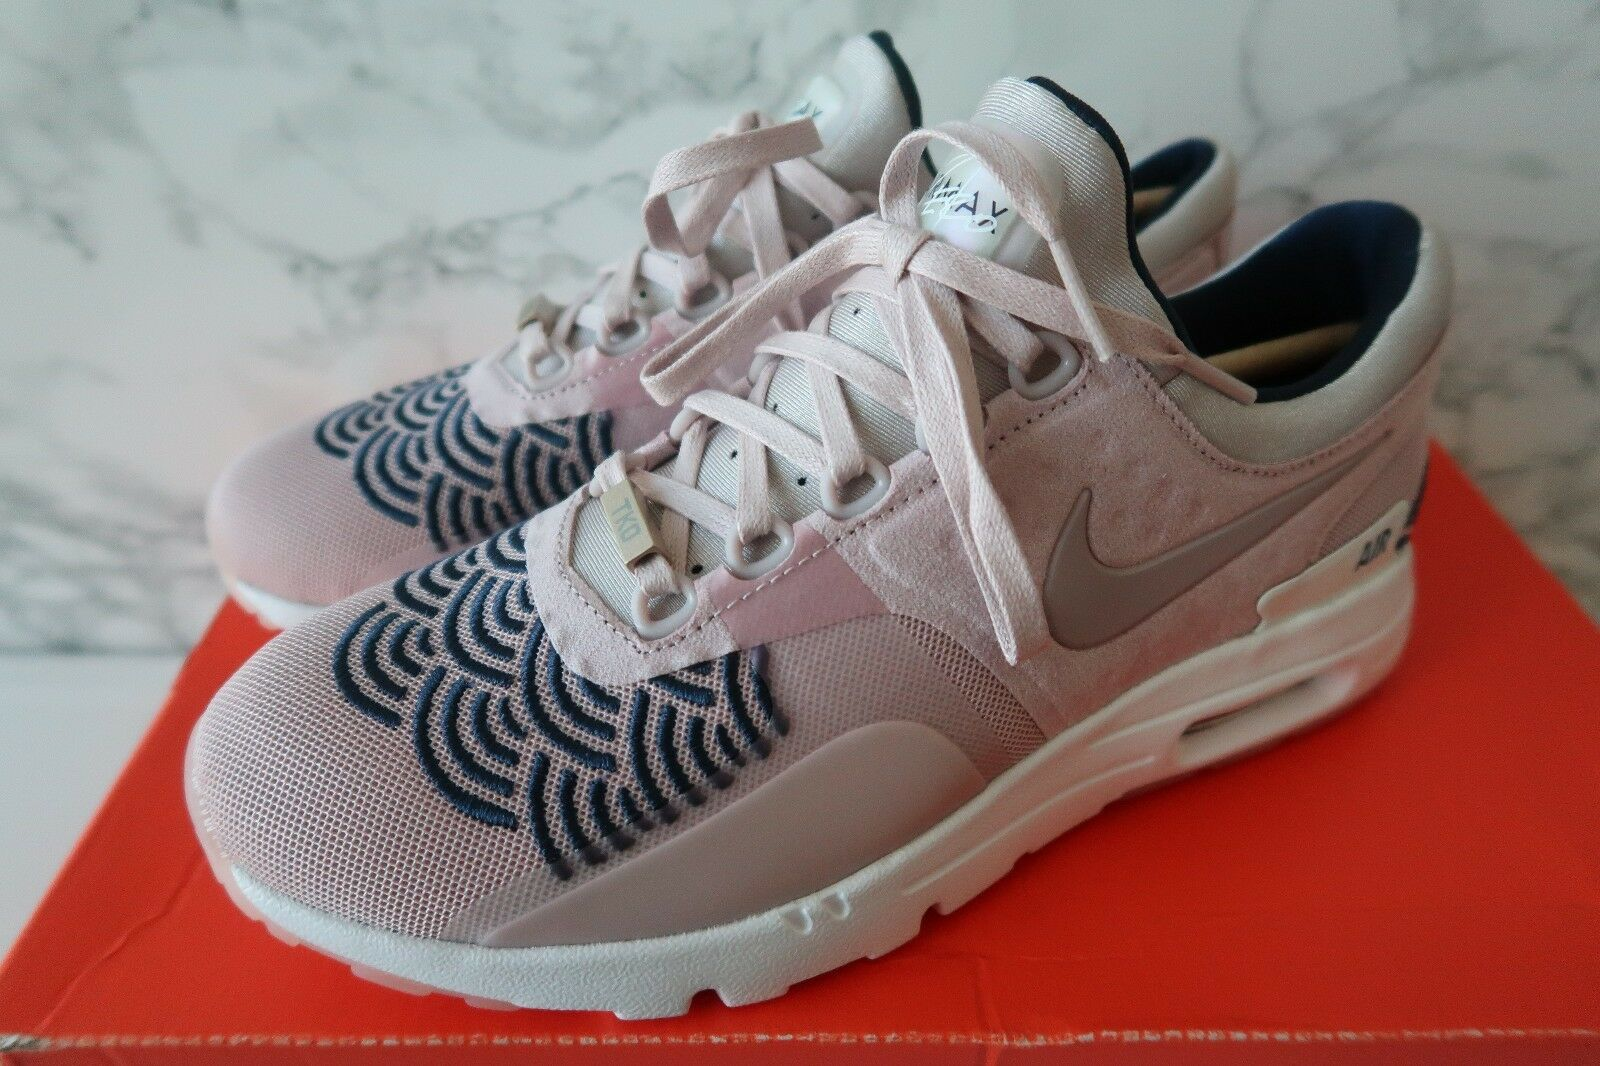 NIKE Women's AIR MAX ZERO LOTC QS TOKYO Limited Edition size 6.5 New with Box